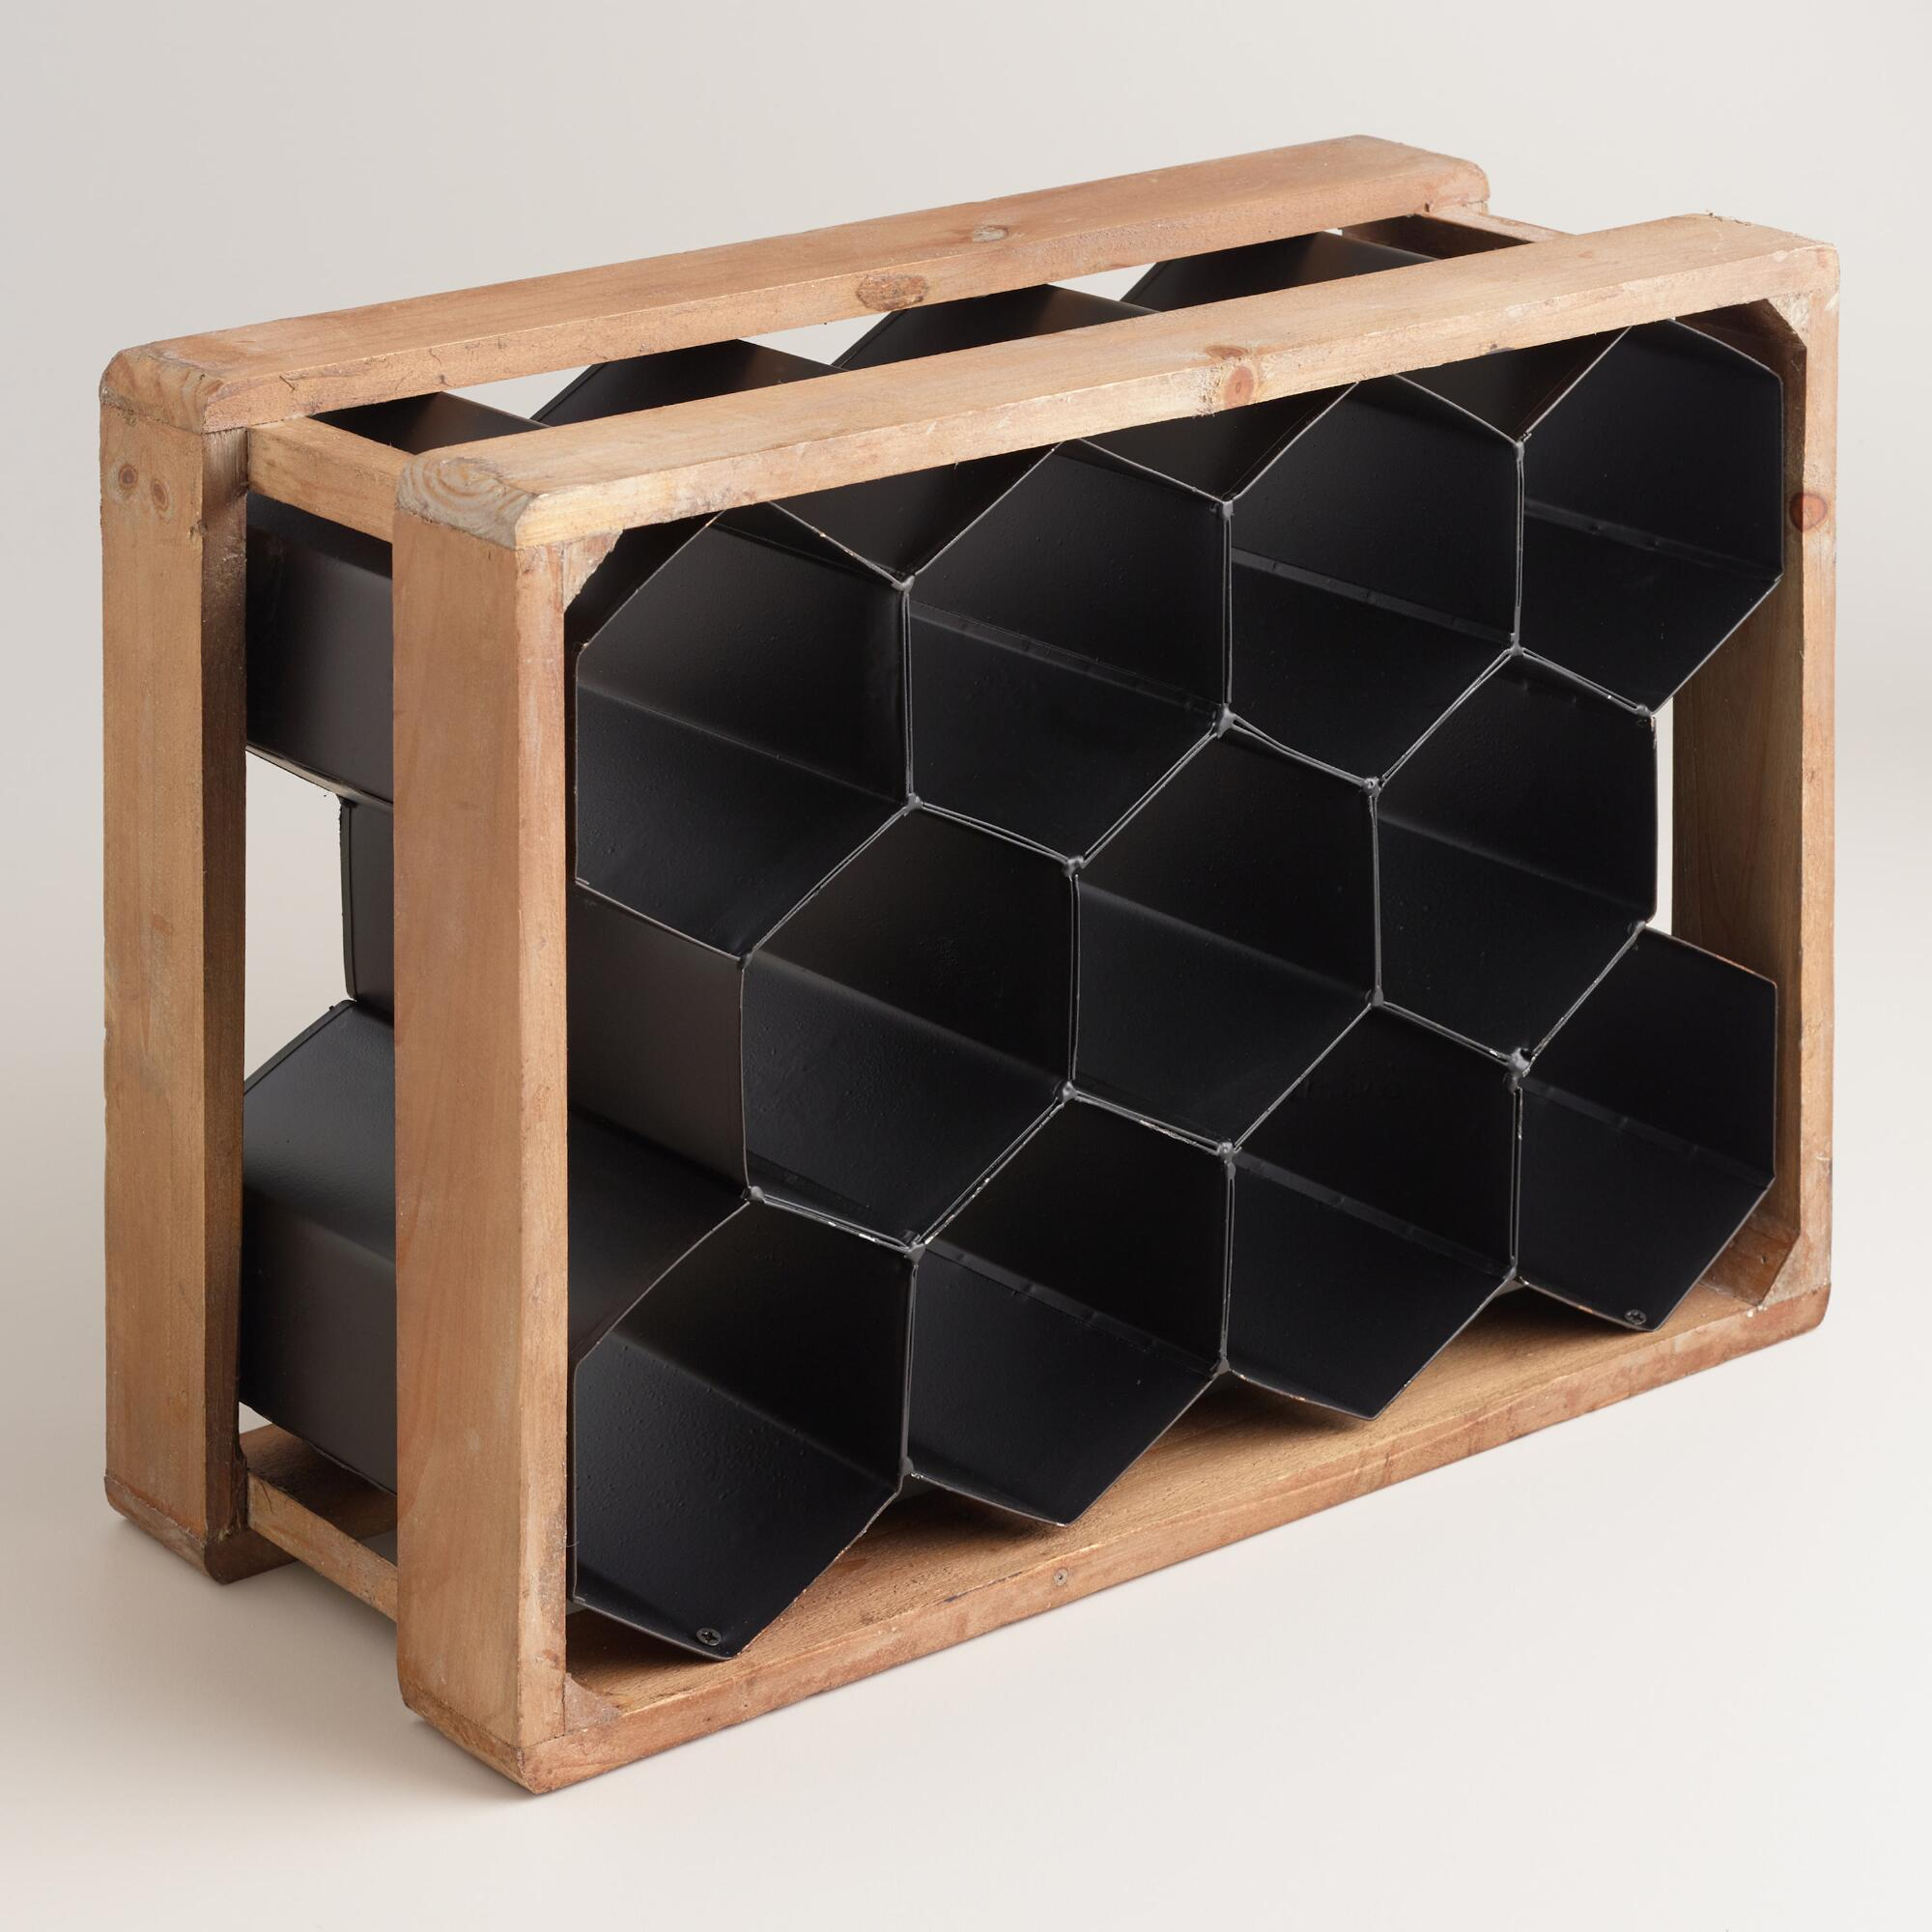 metal and wood honeycomb 11 bottle wine rack world market. Black Bedroom Furniture Sets. Home Design Ideas